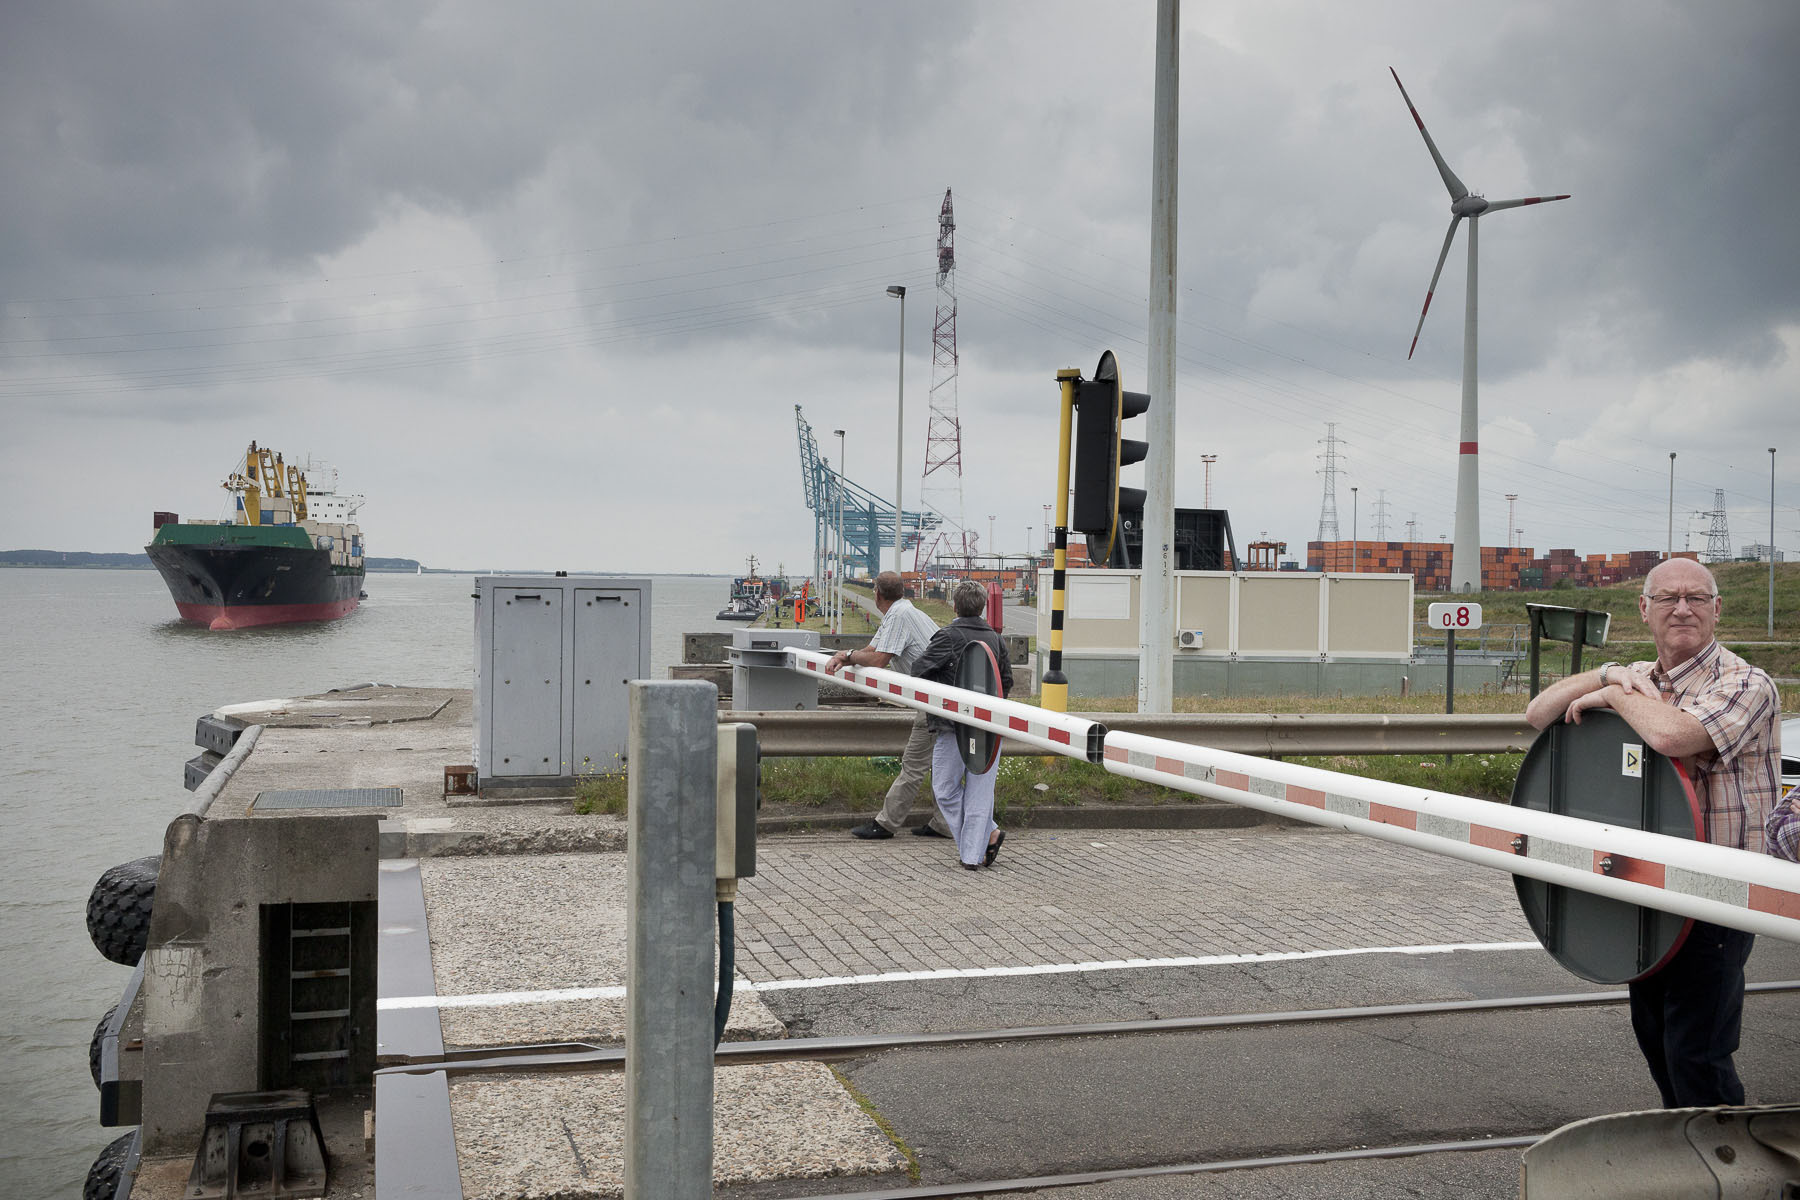 Entering through the Berendrecht lock, the largest port lock in the world in July 2010